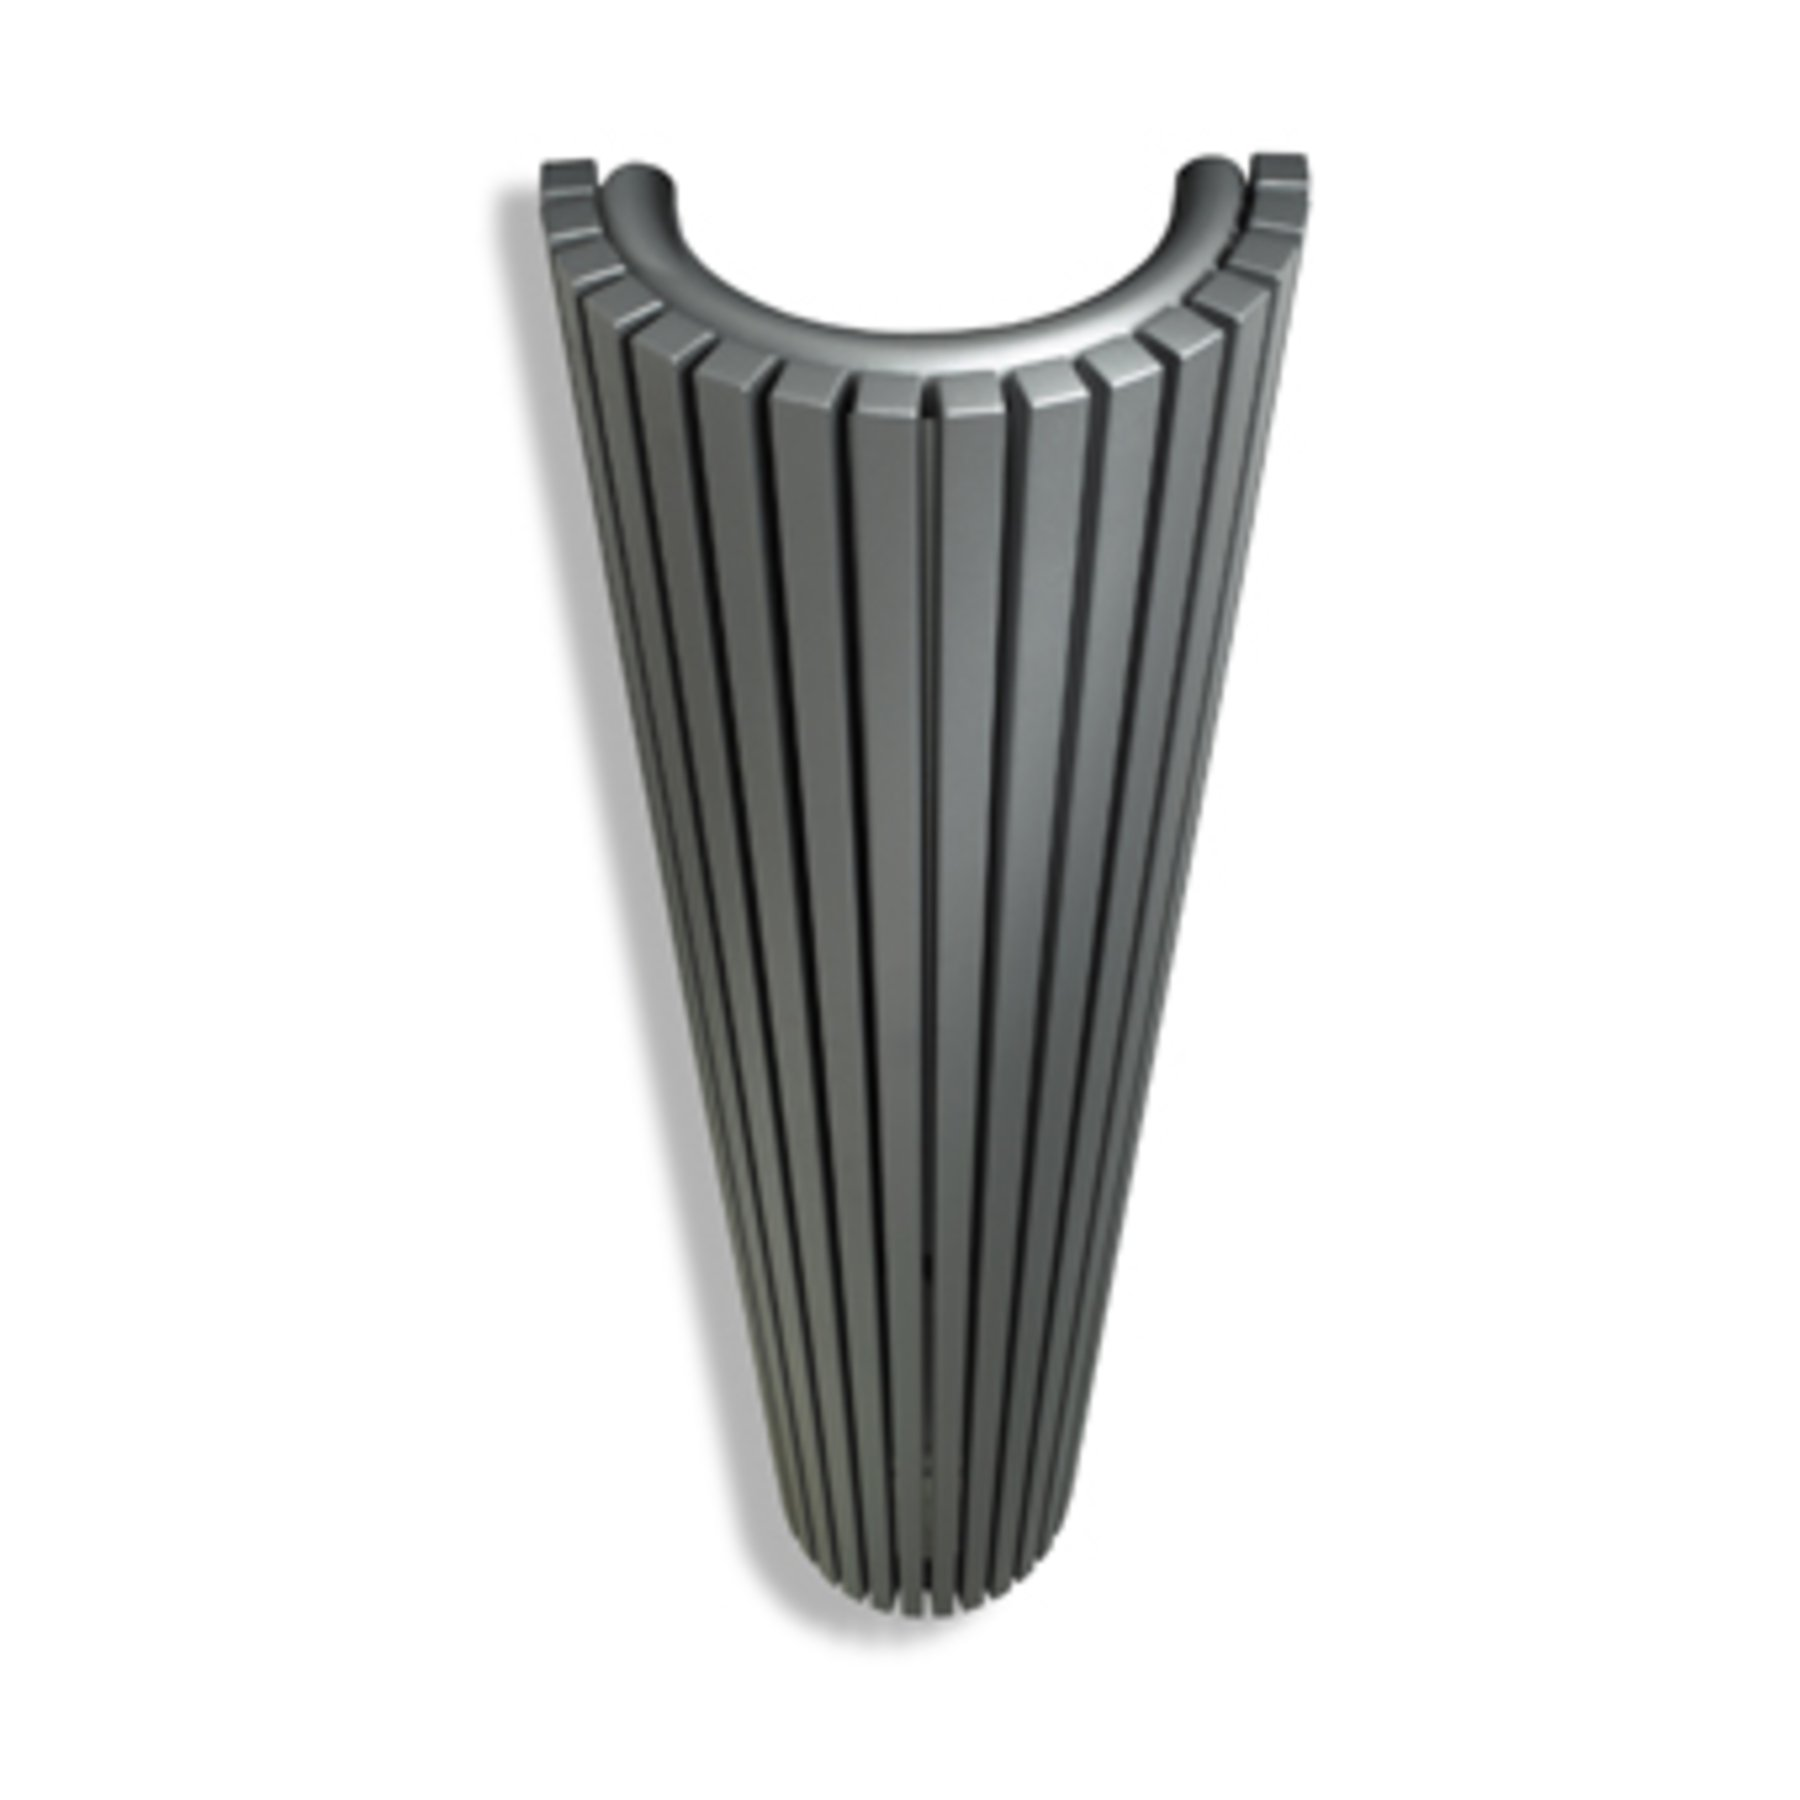 Vasco Carre Halfrond CR O designradiator halfrond verticaal 430x1800mm 1981 watt antraciet